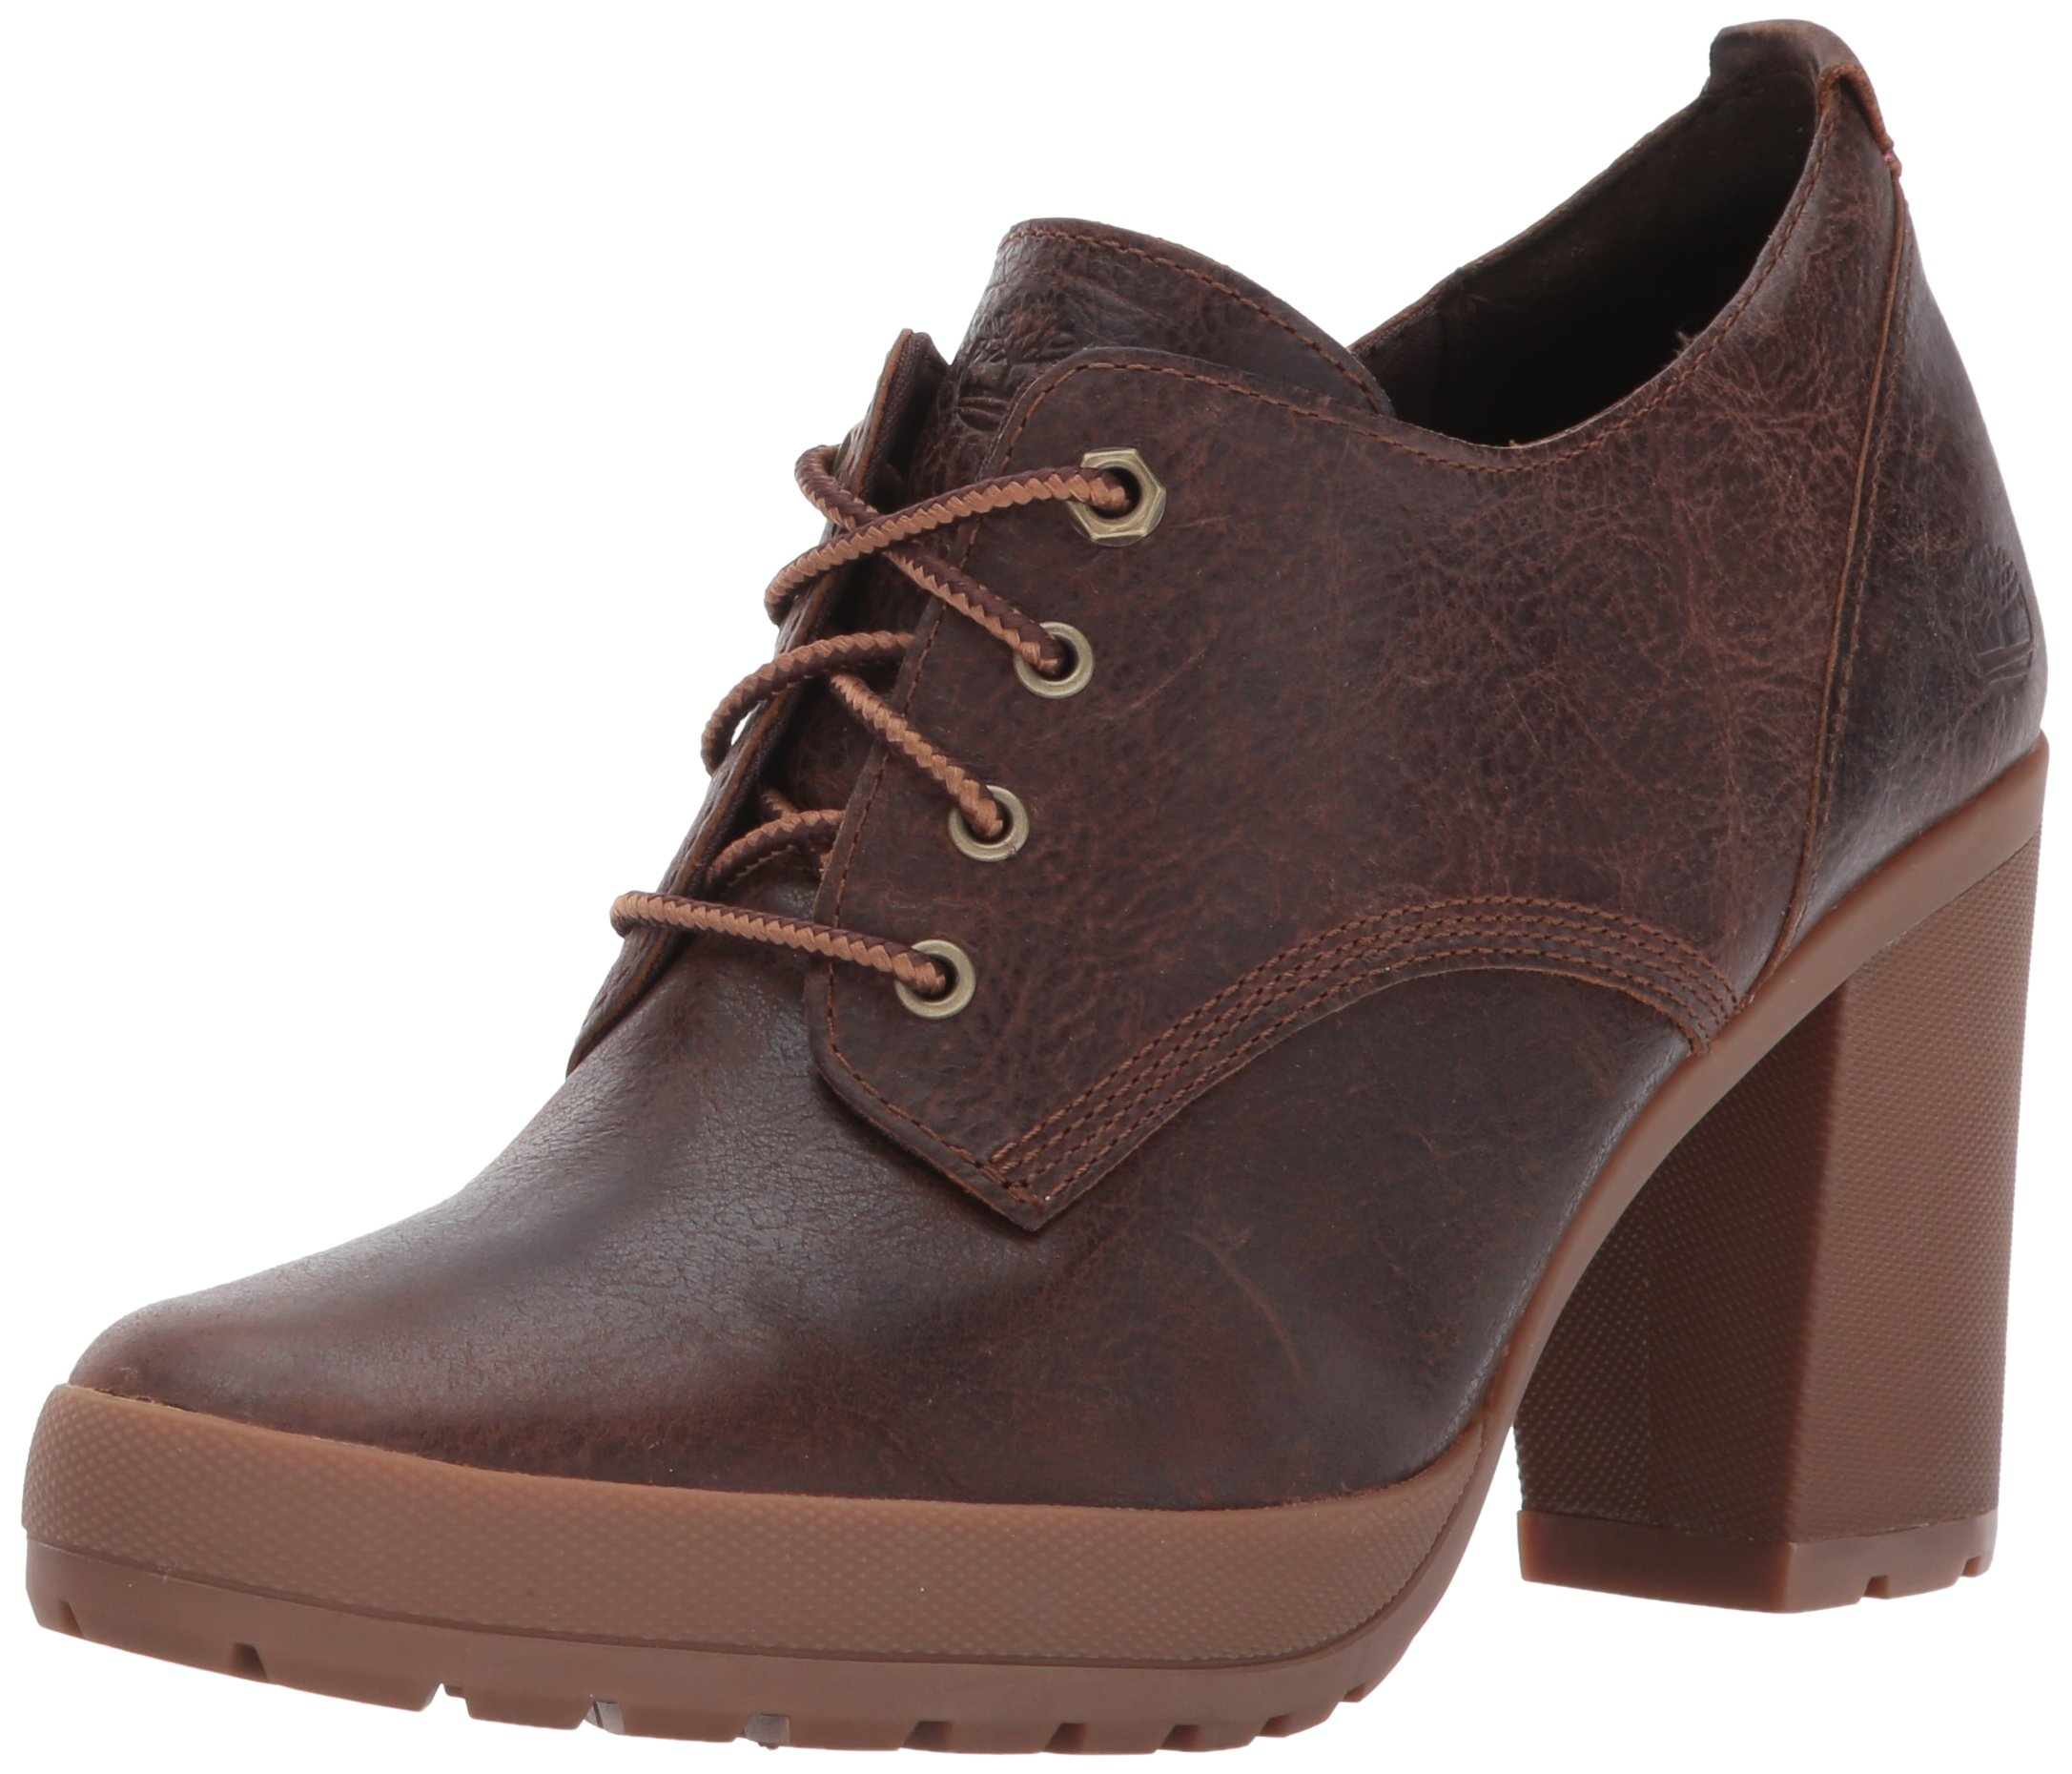 Timberland Women's Camdale Oxford,Medium Brown,6 M US